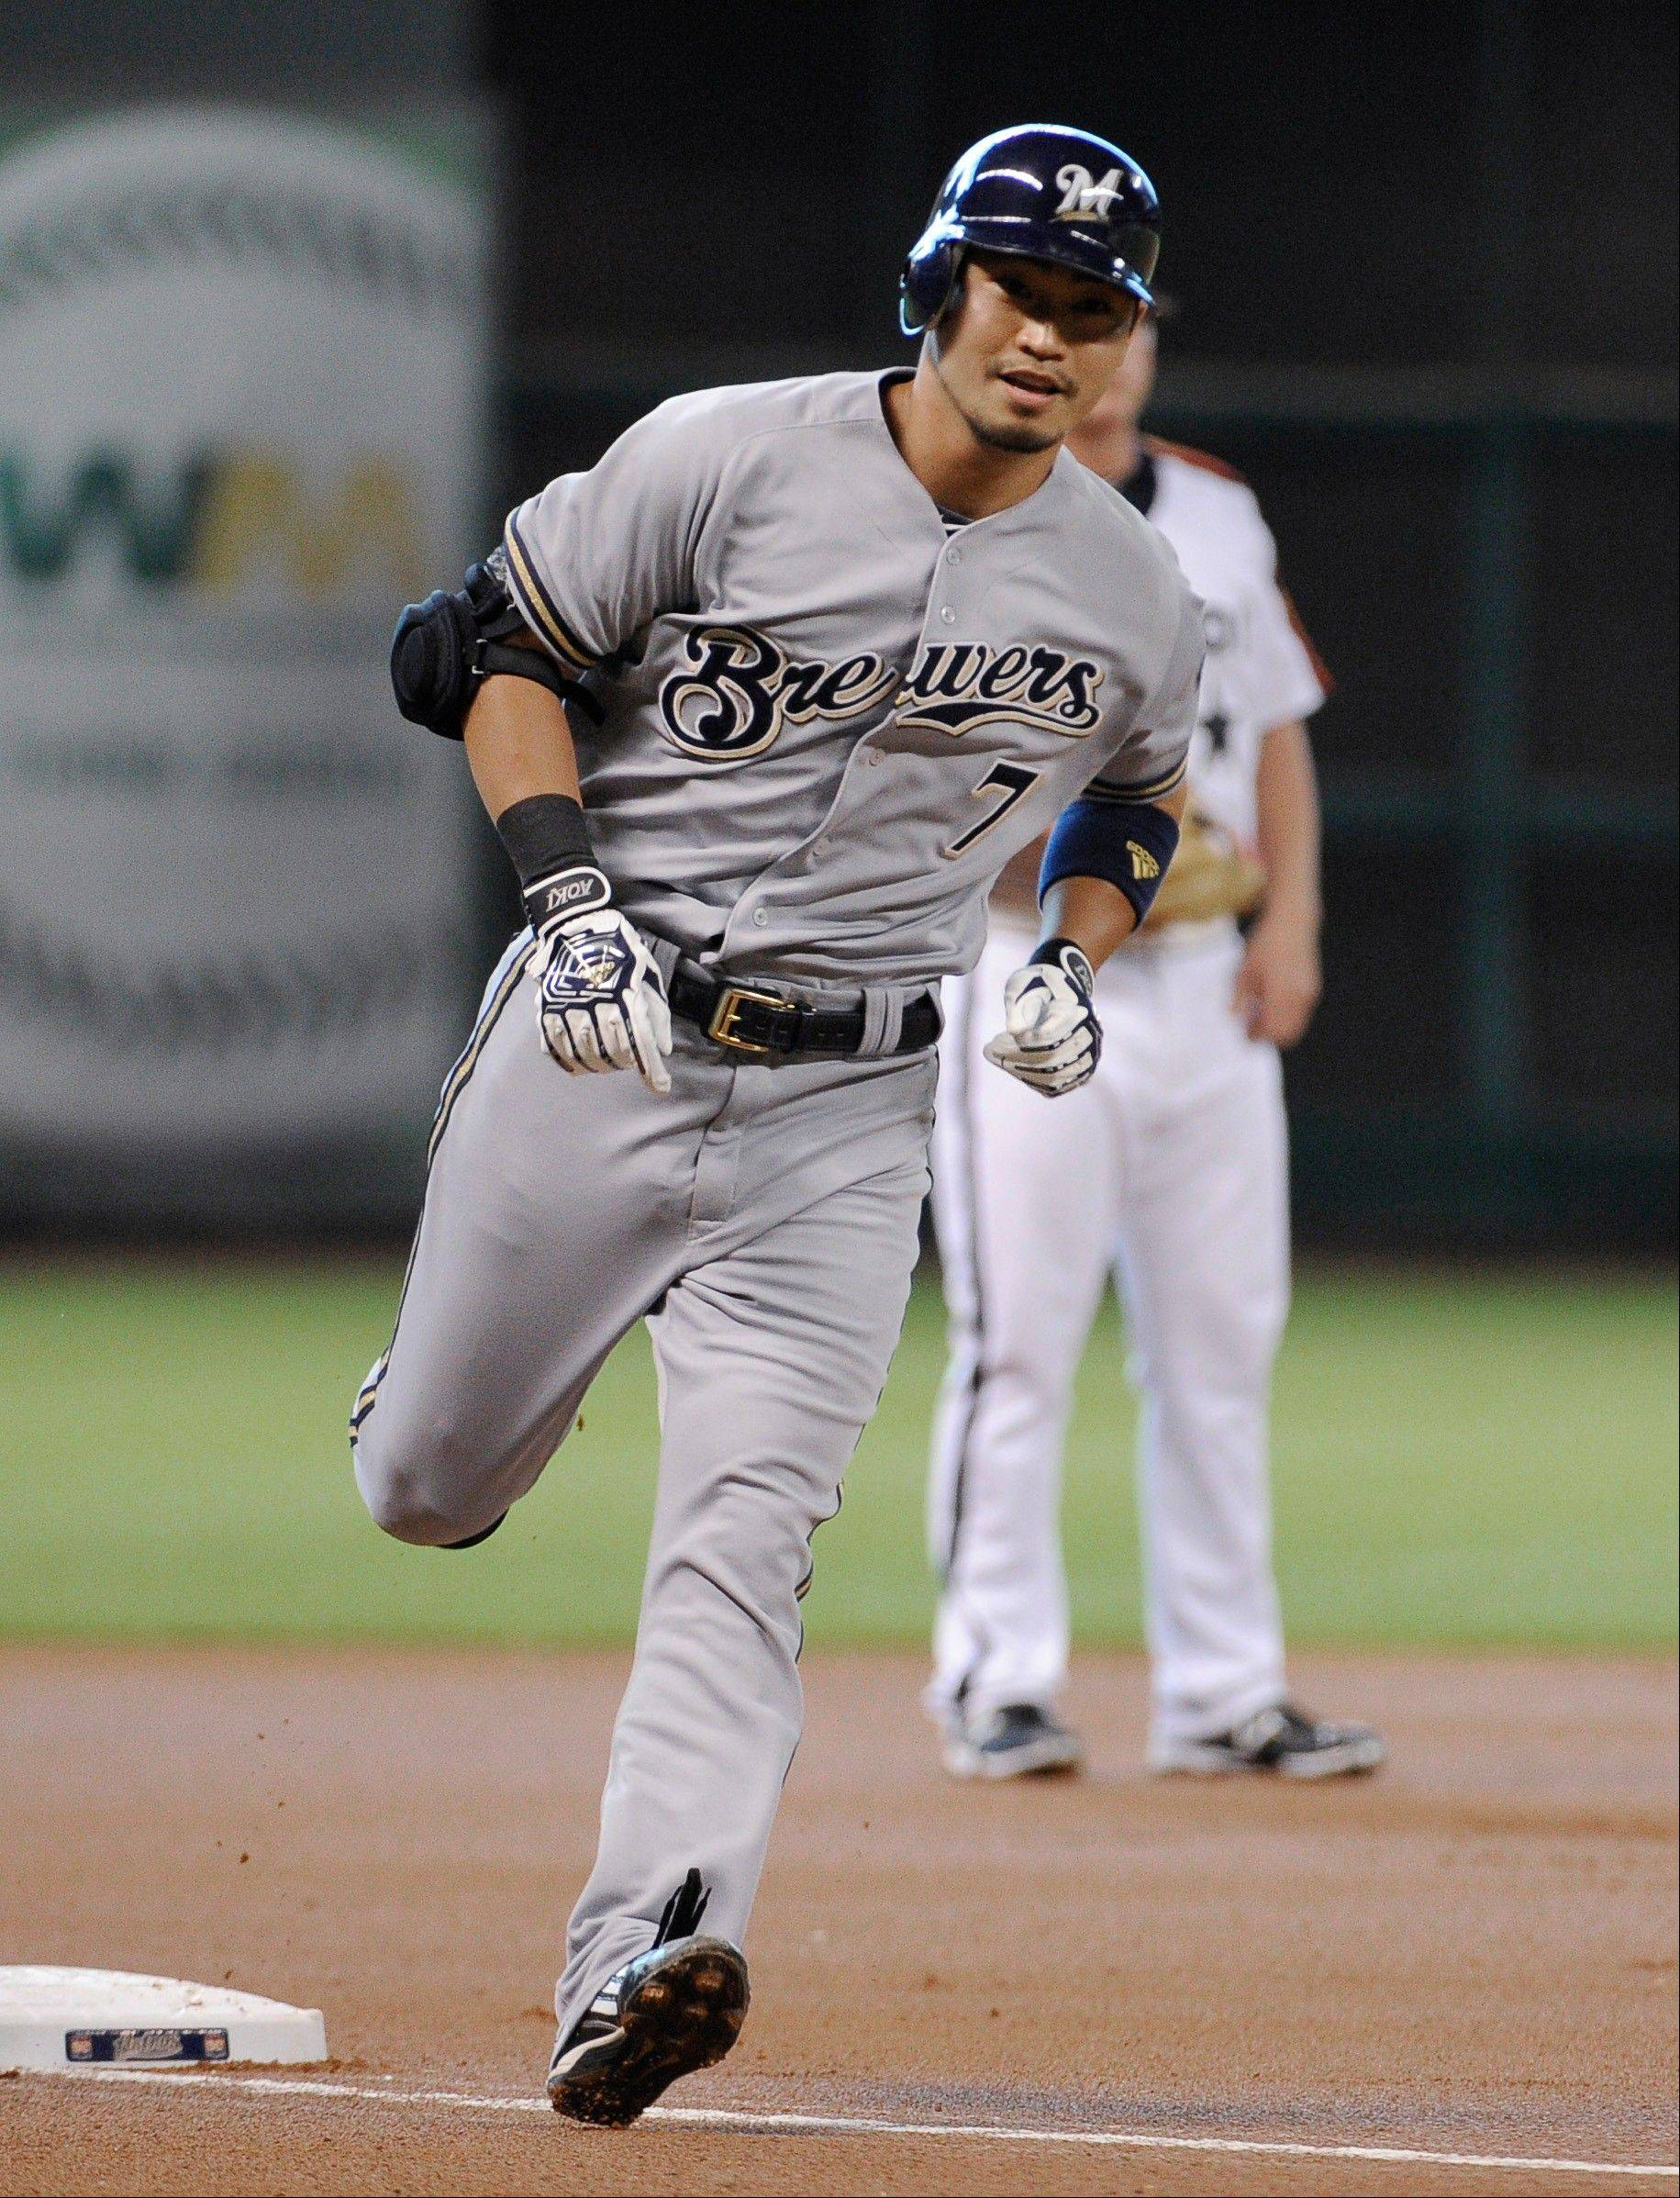 Milwaukee's Norichika Aoki rounds third base on a solo home run against the Astros in the first inning Friday in Houston.